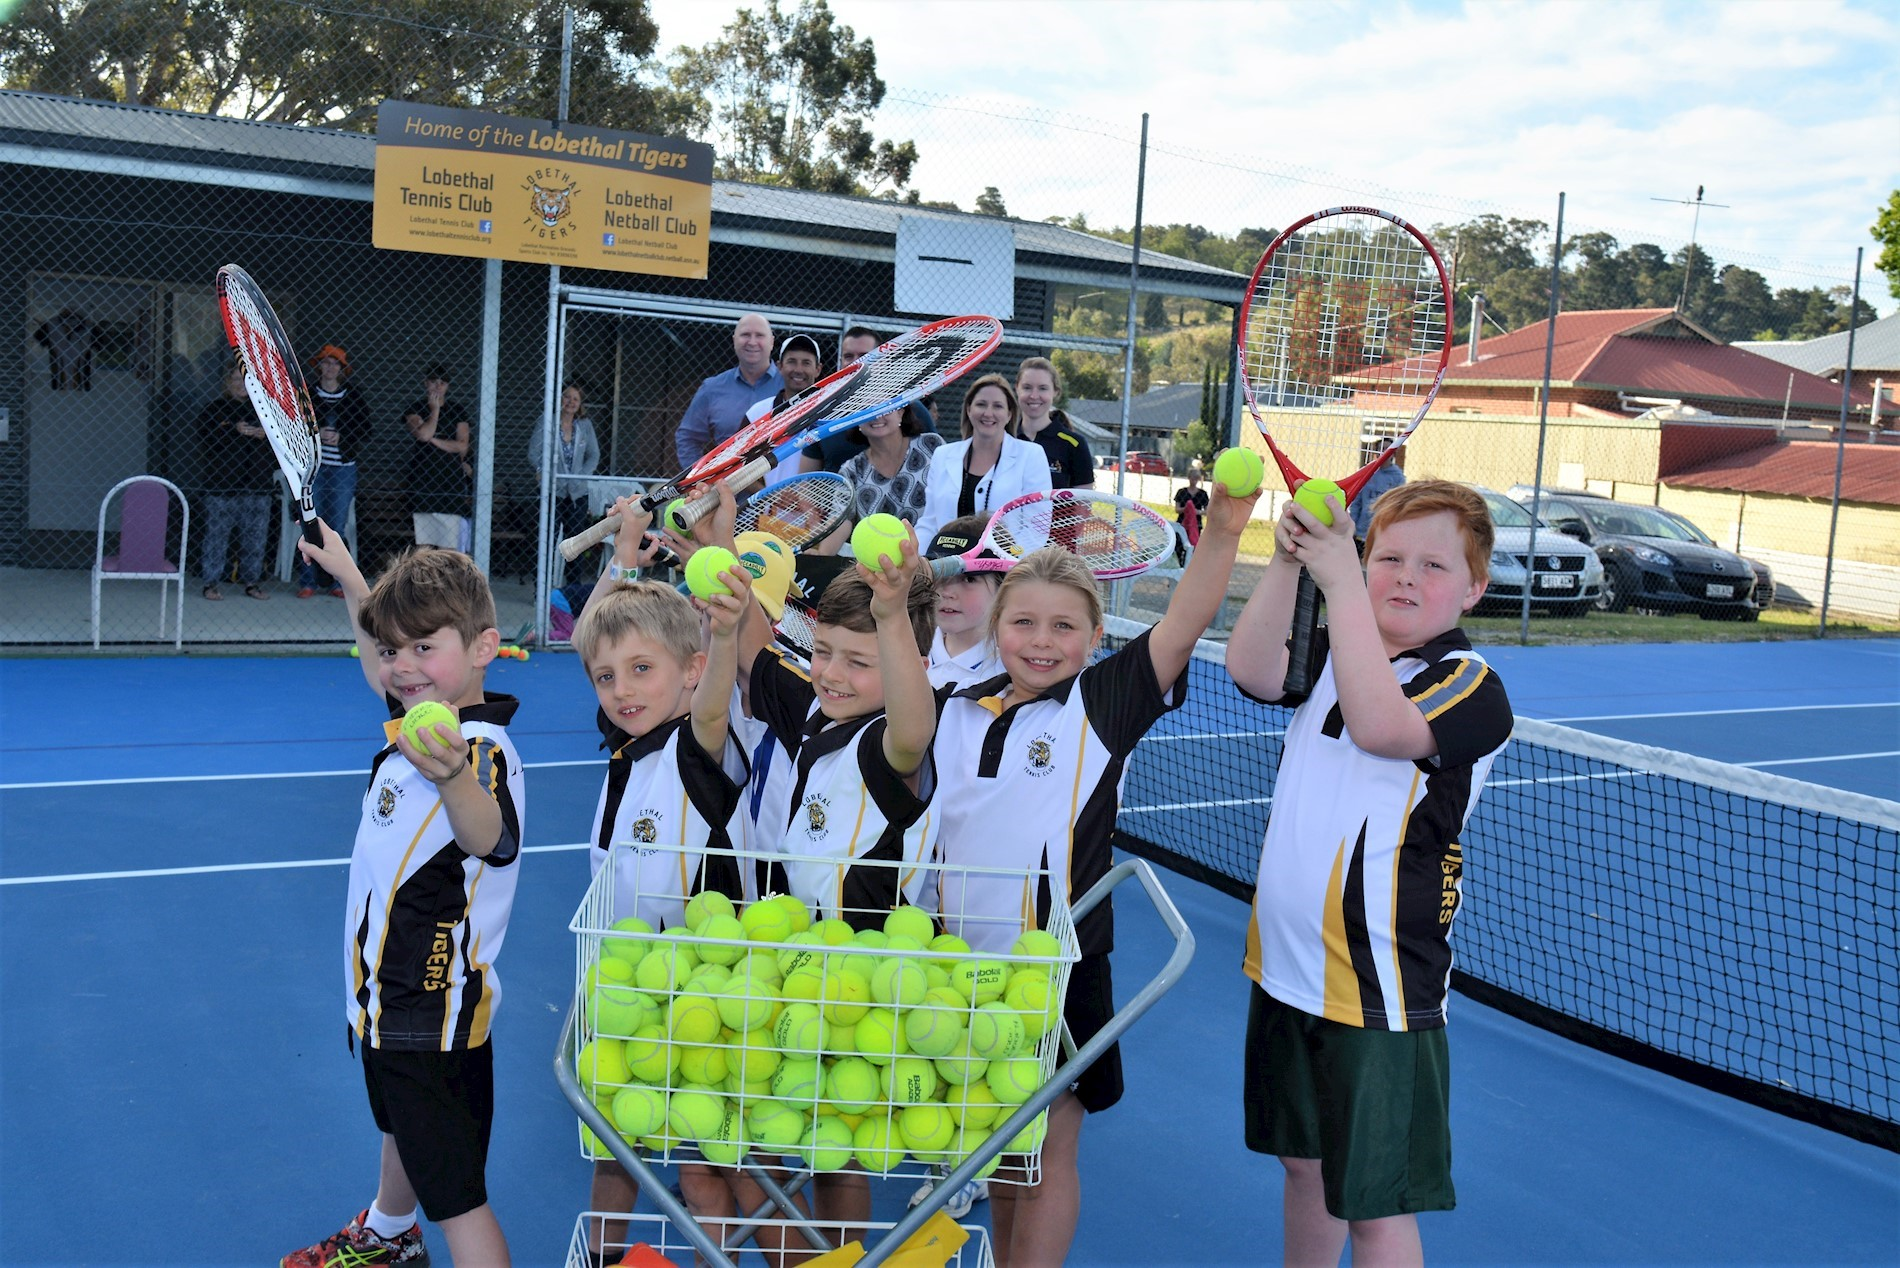 Lobethal Tennis Club